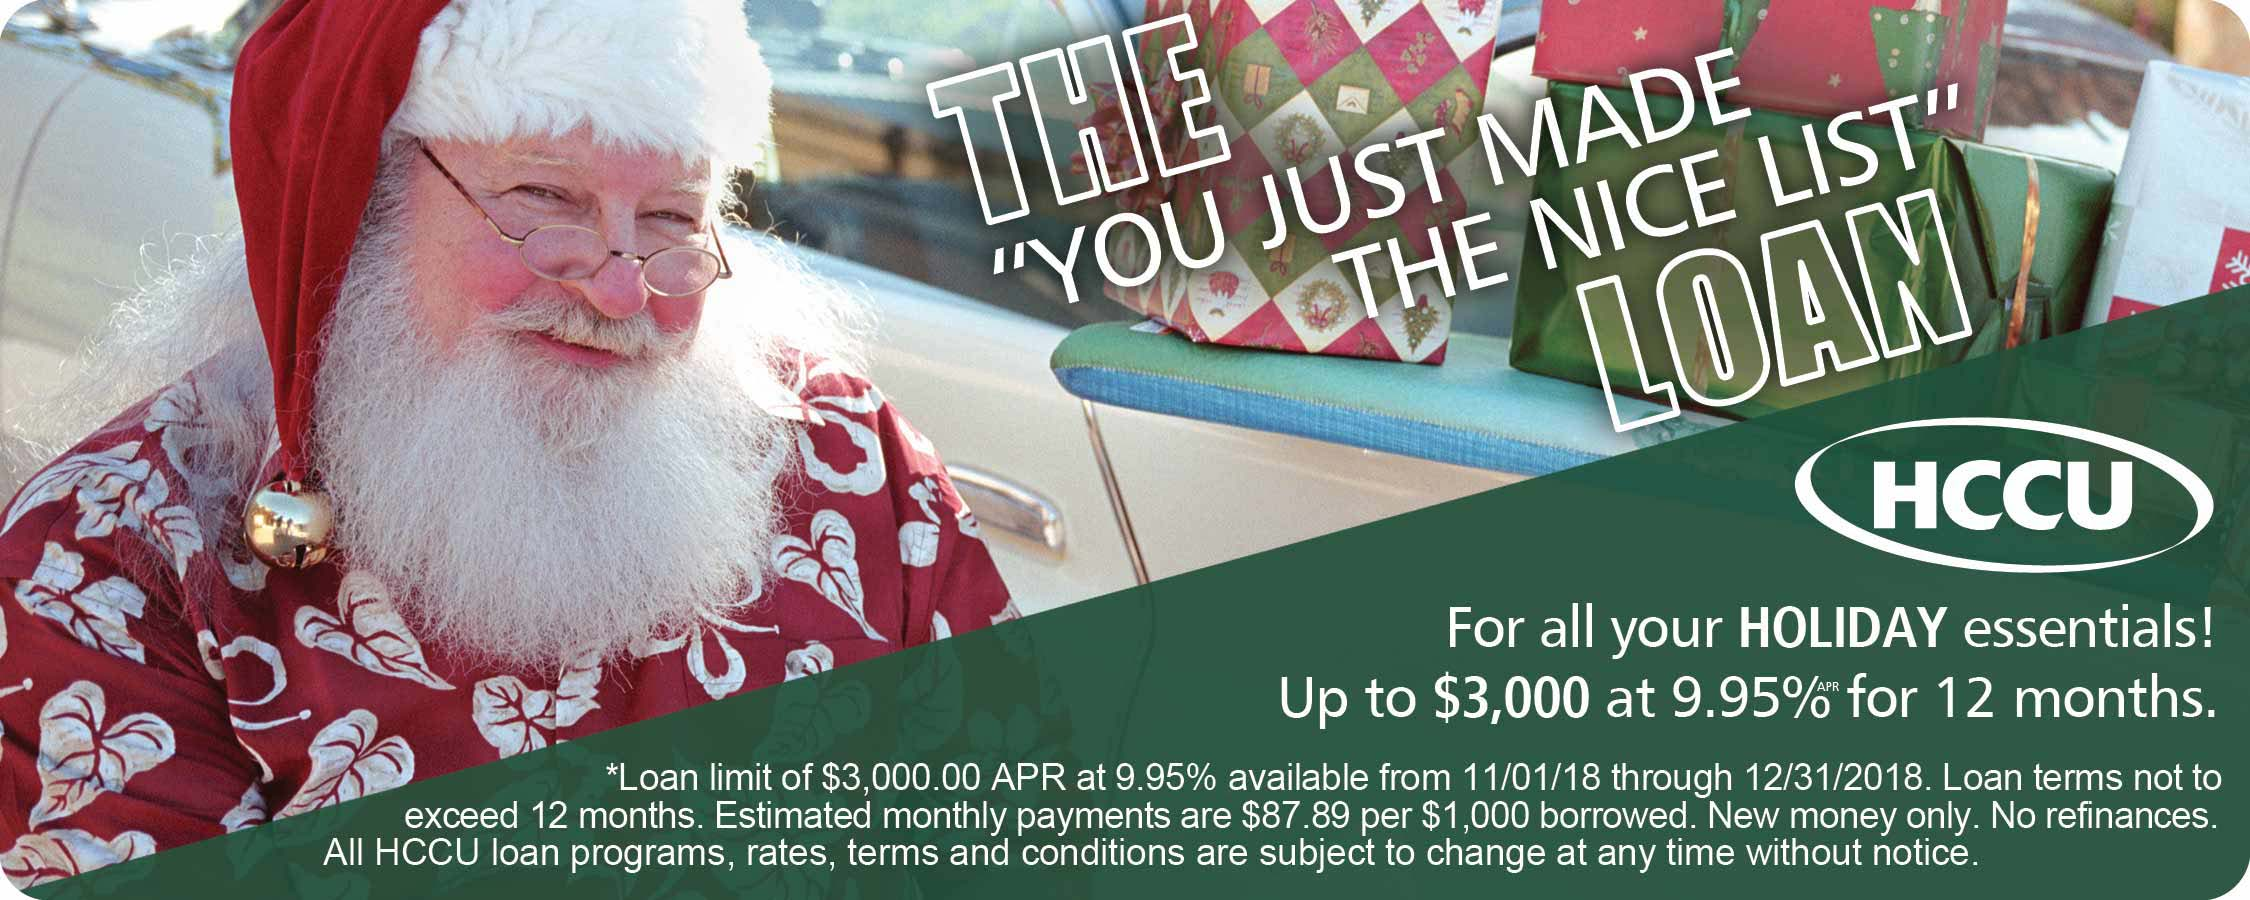 "THE ""you just made the nice list"" LOAN For all your holiday essential! Up to $3,000 at 9.95% APR for 12 months."